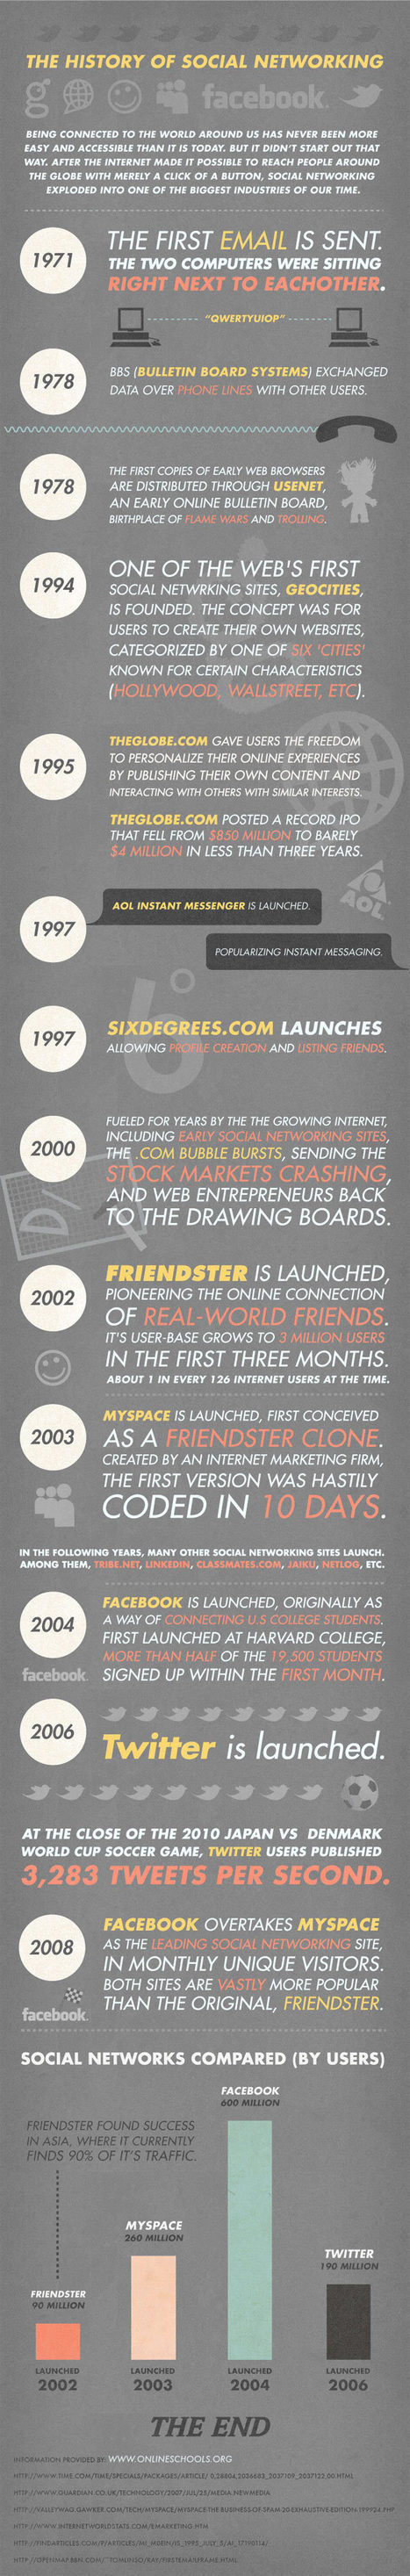 Inventing Social Networking: From then to now Infographic | Idea 4 Invention | Infographics Galore | Scoop.it